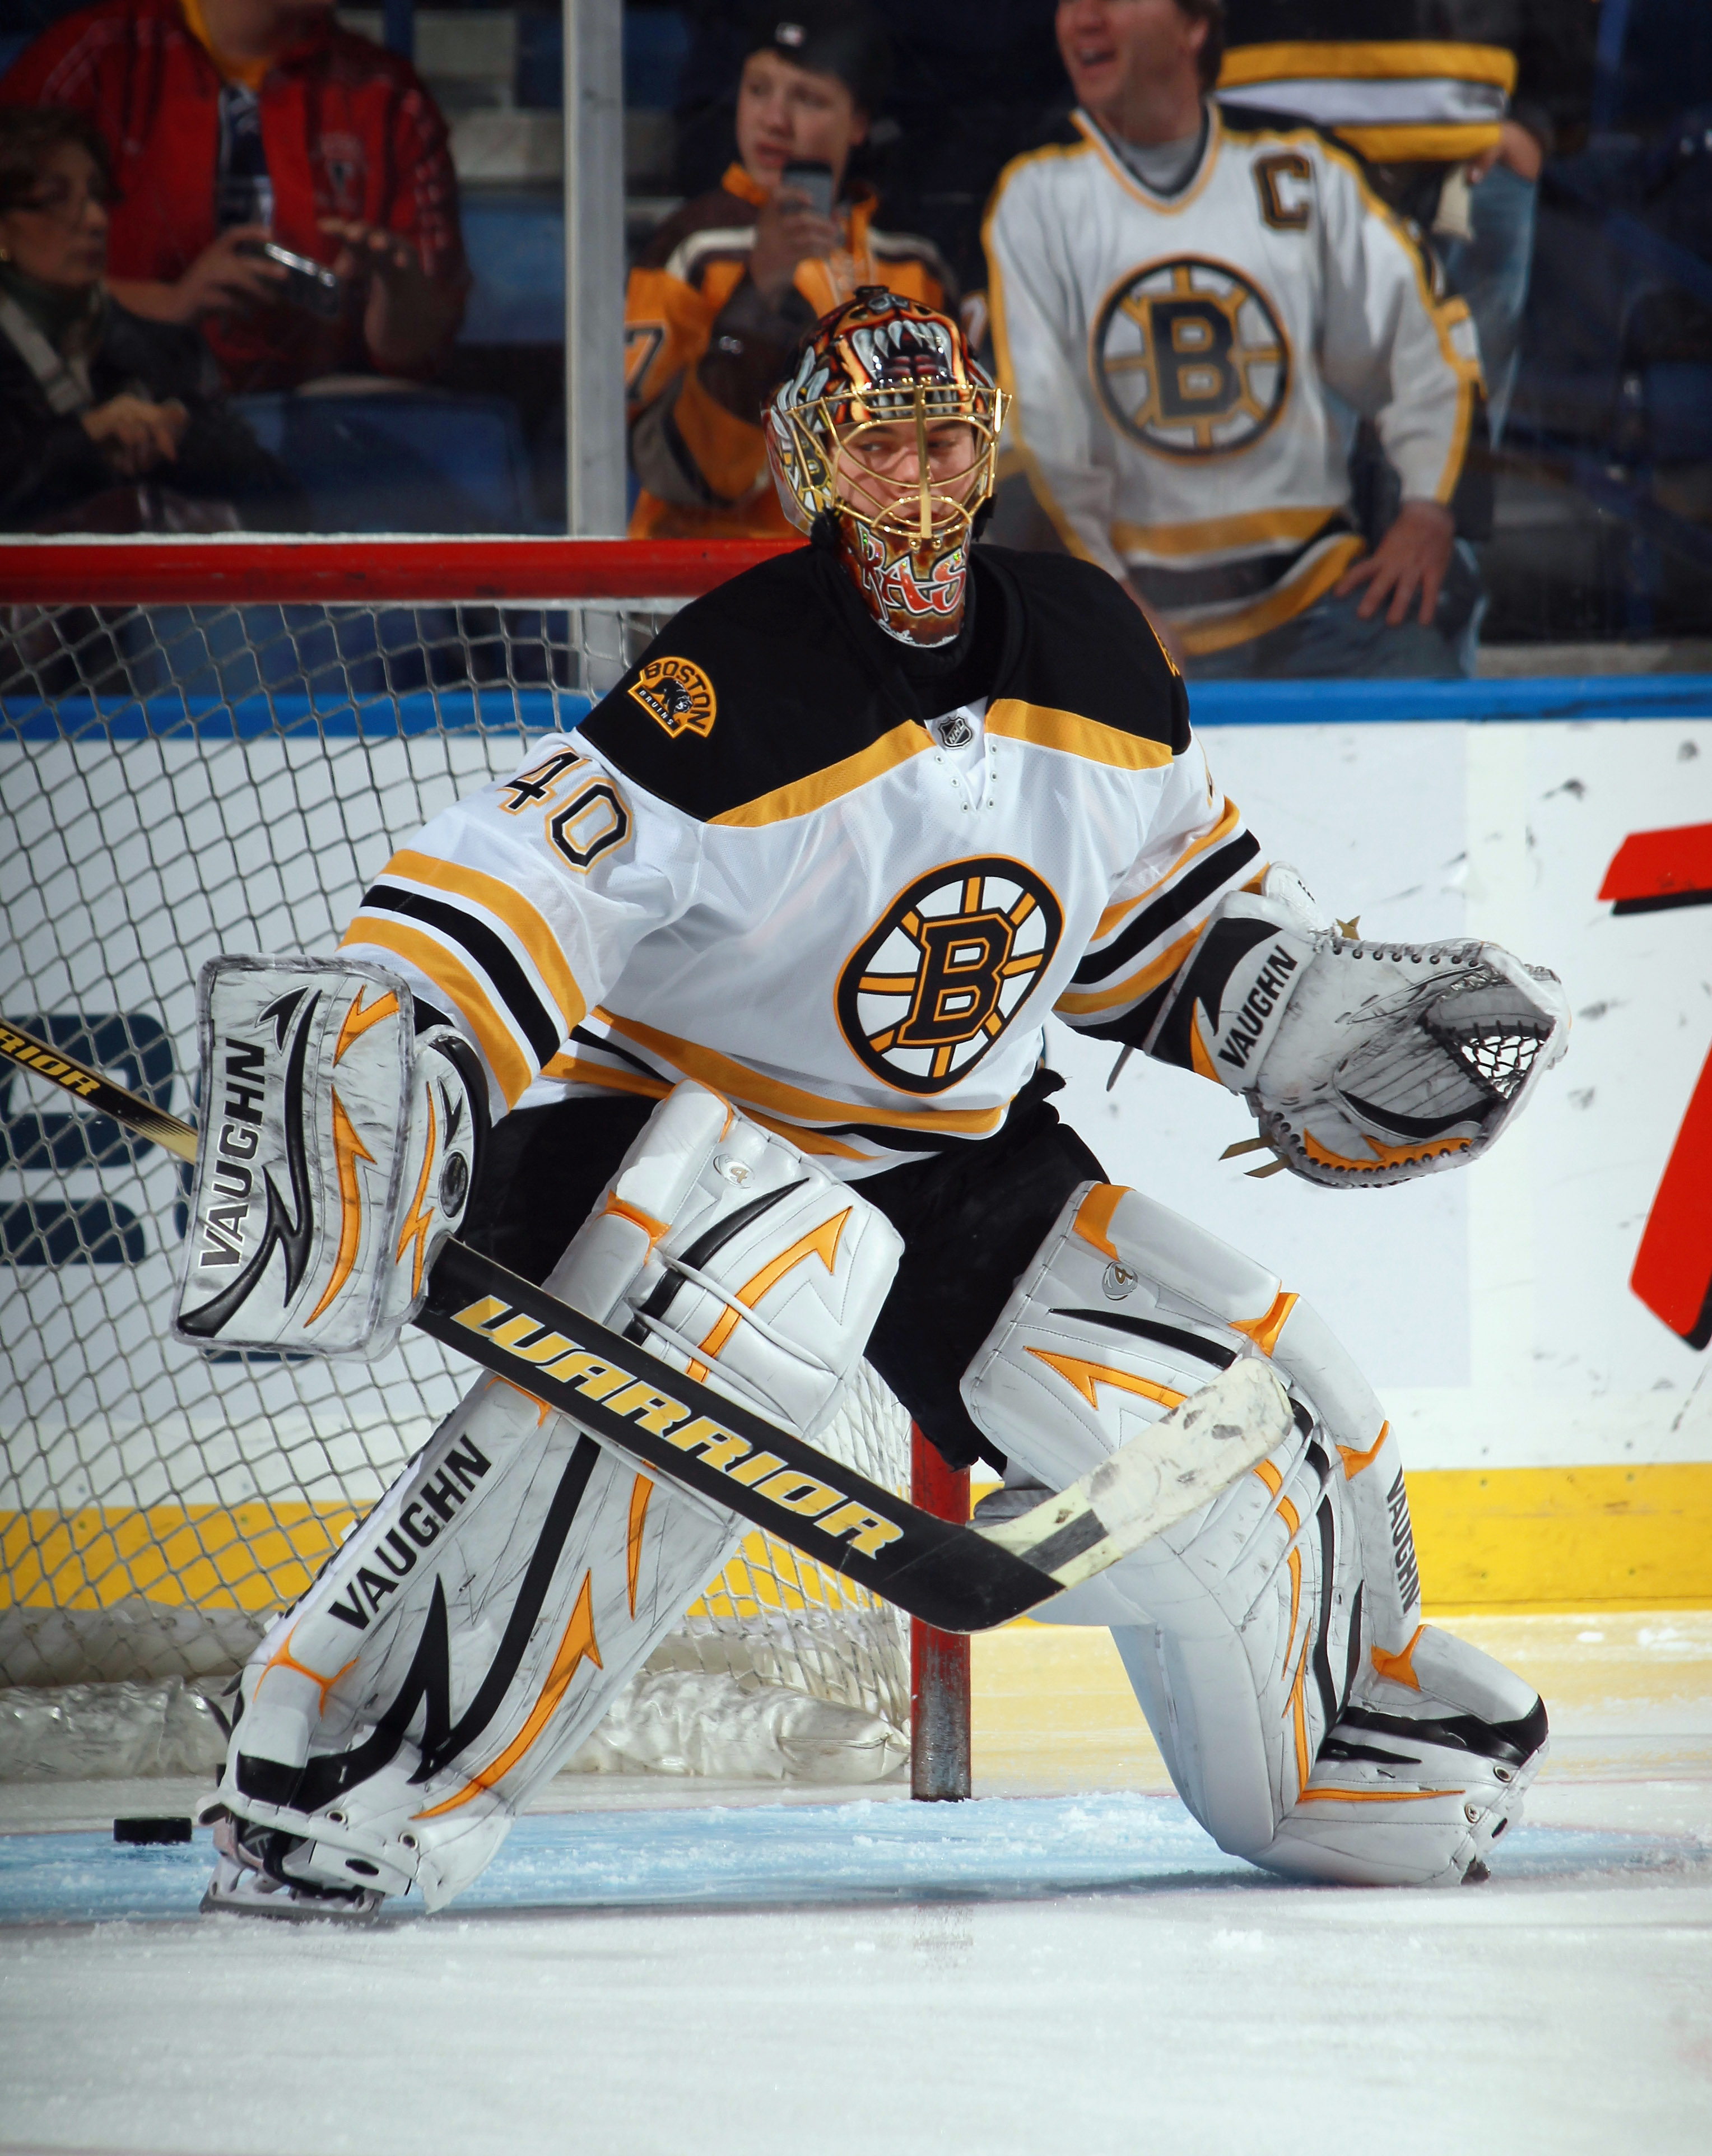 BUFFALO, NY - NOVEMBER 03: Tuukka Rask #40 of the Boston Bruins skates during warmups prior to the game against the Buffalo Sabres at the HSBC Arena on November 3, 2010 in Buffalo, New York. The Bruins defeated the Sabres 5-2.  (Photo by Bruce Bennett/Get